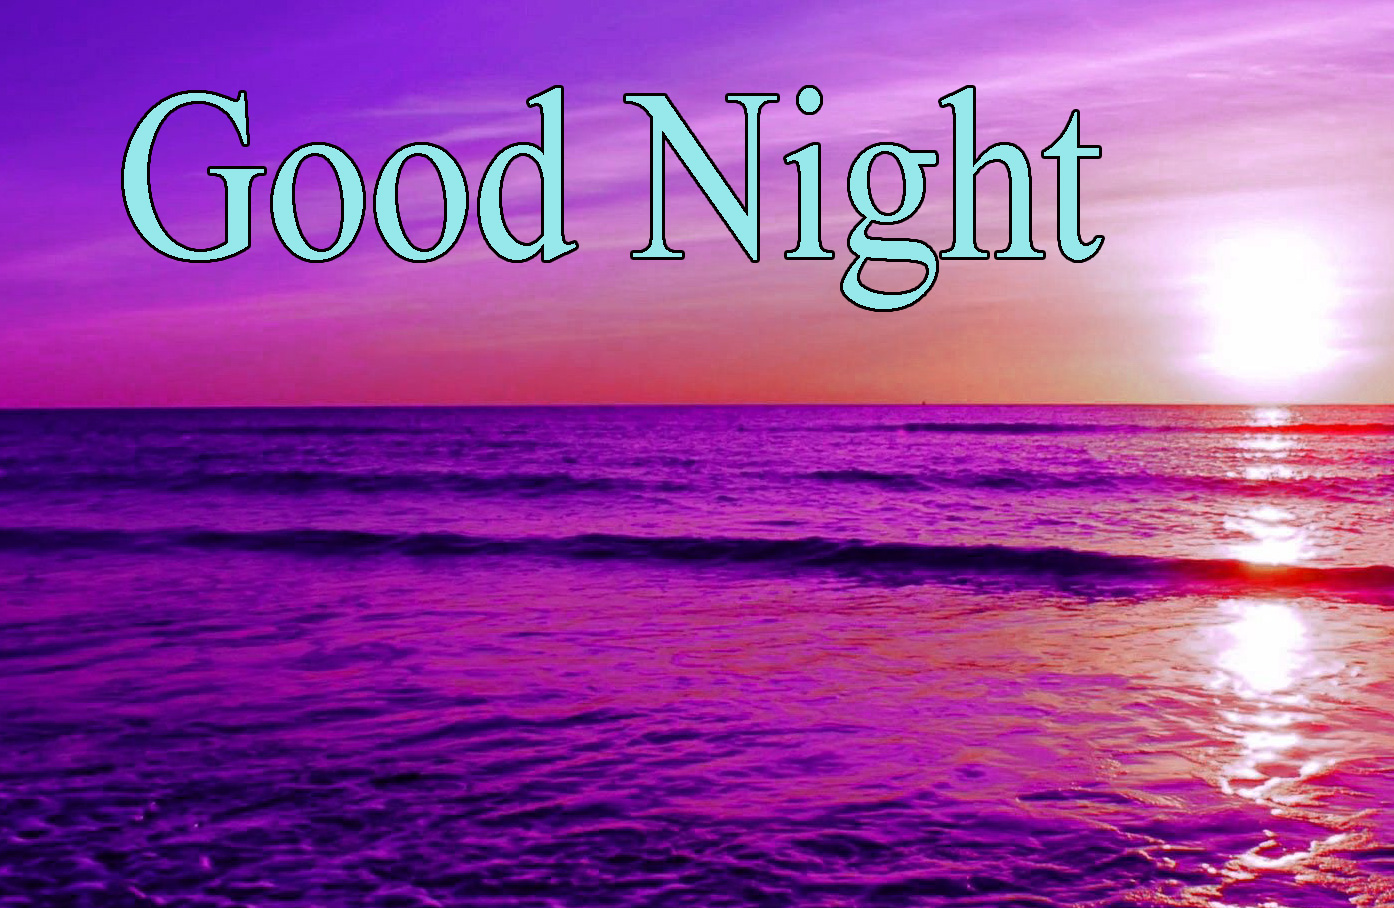 GOOD NIGHT IMAGES FOR LOVER / LOVE COUPLE  IMAGES WALLPAPER PICS DOWNLOAD & SHARE